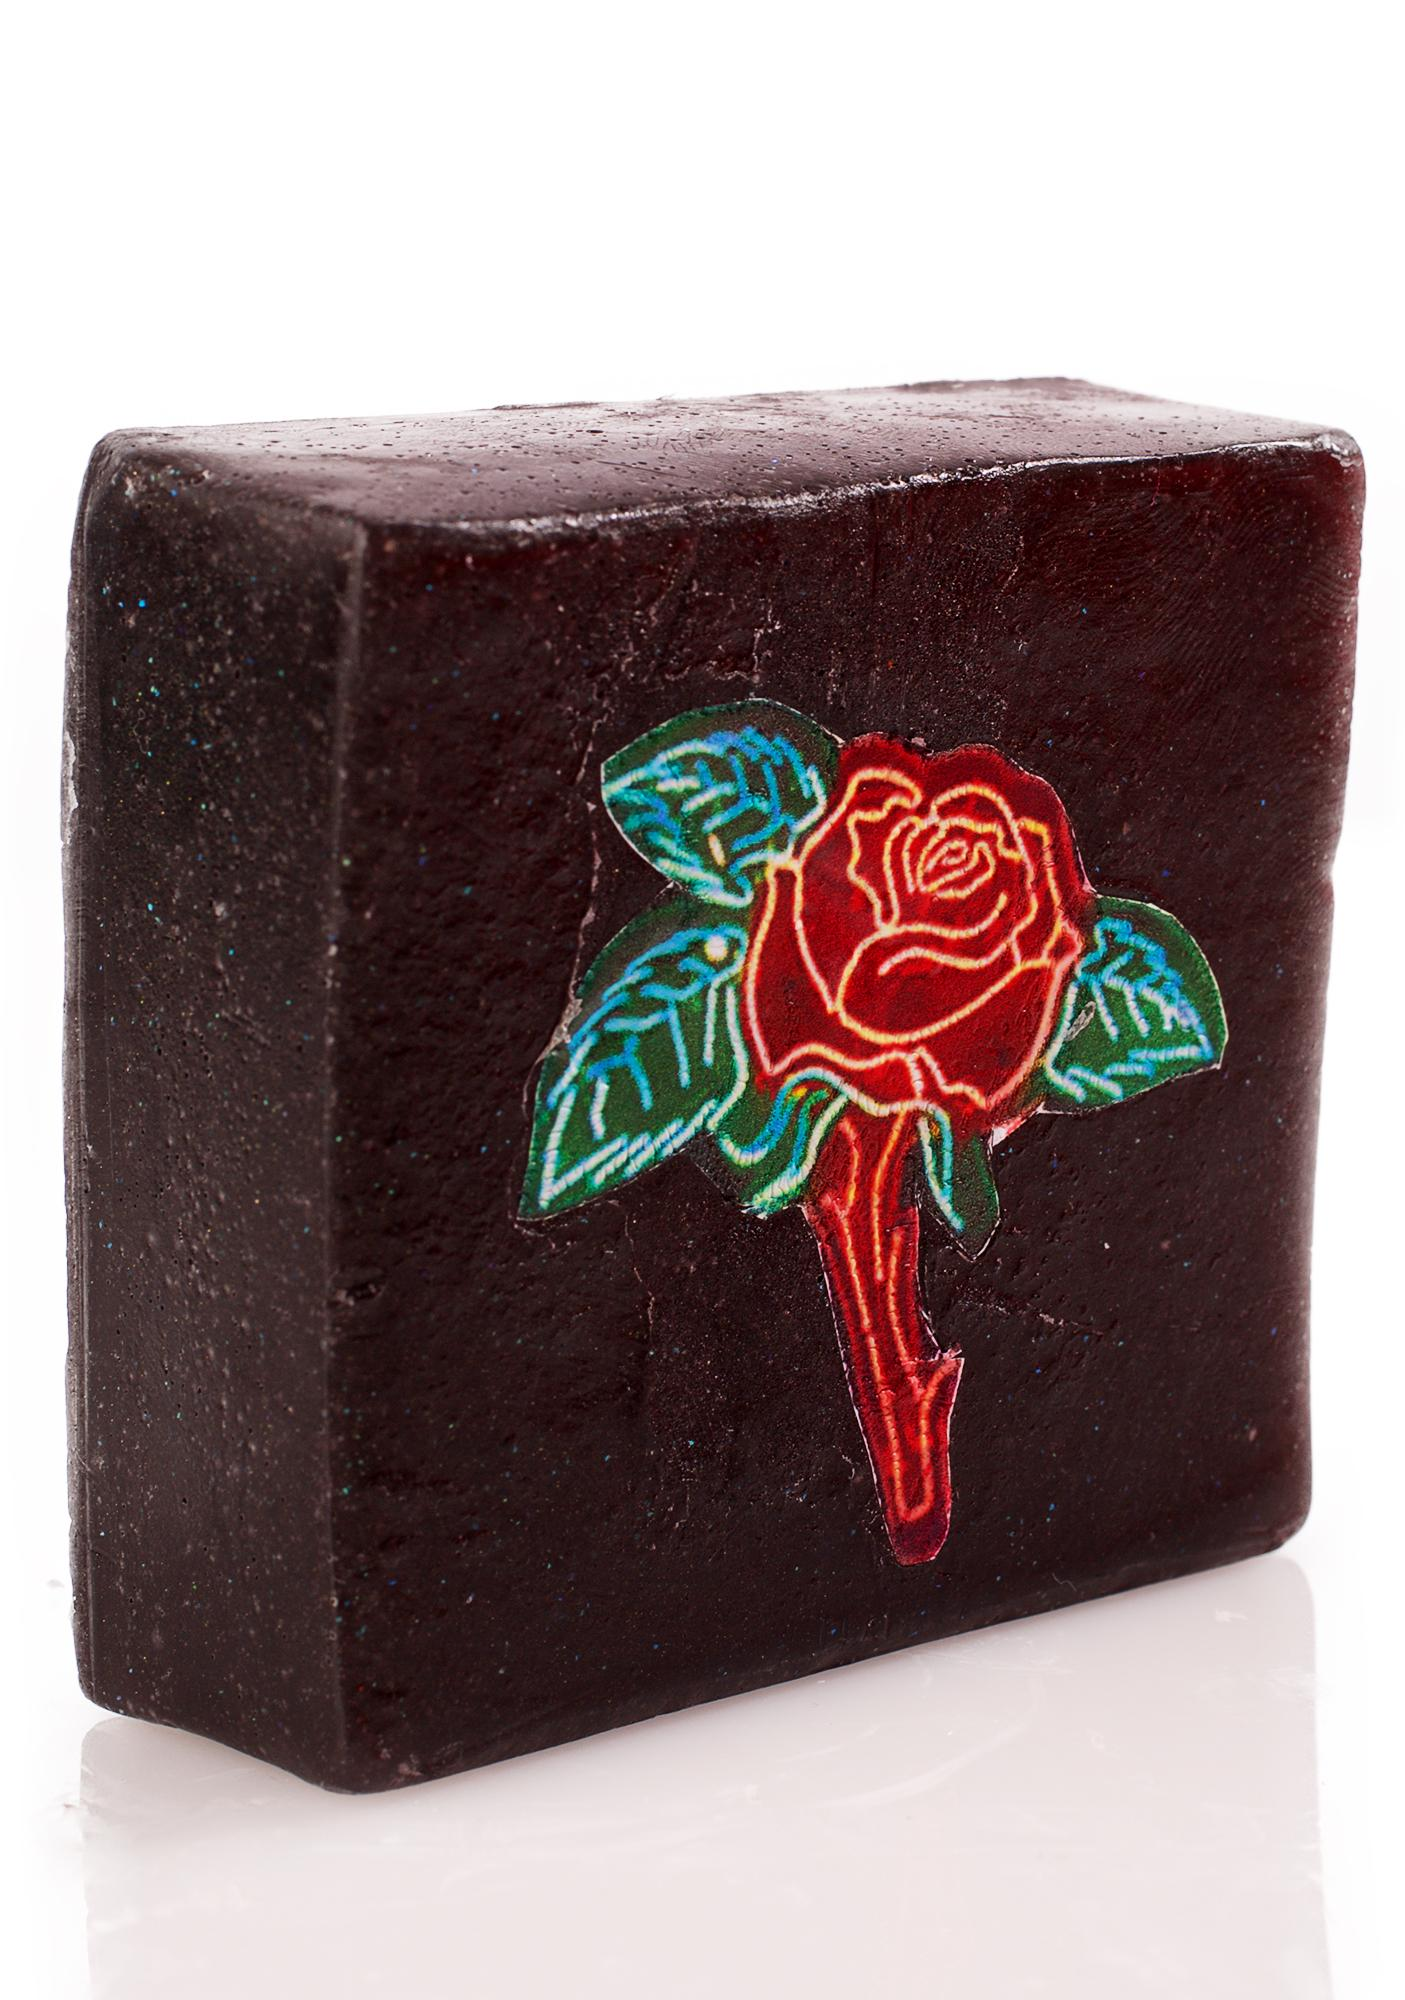 Dirty Grl Chinatown Rose Soap